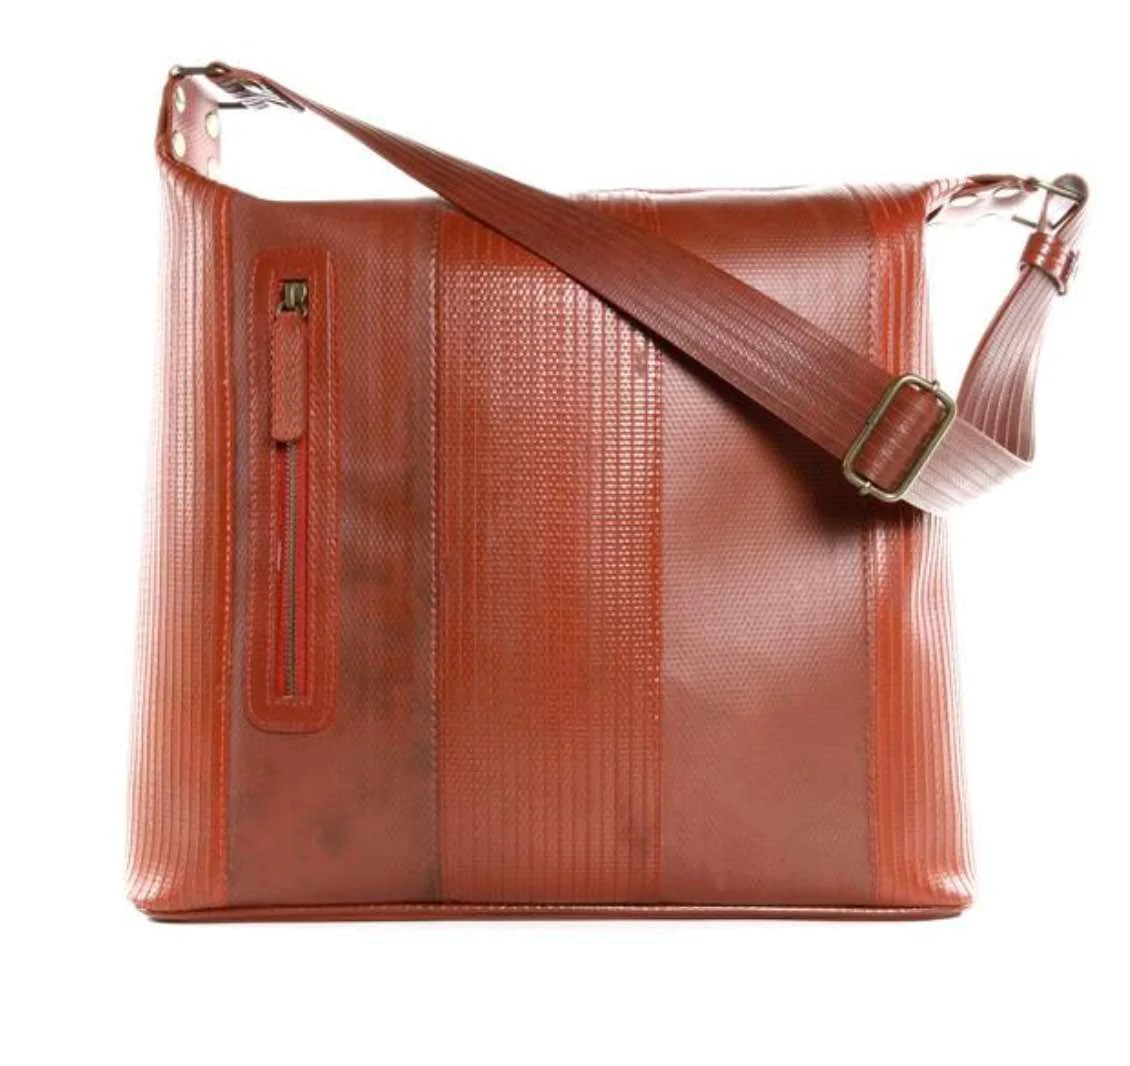 Elvis & Kresse Ethical and Sustainable Women's Bags